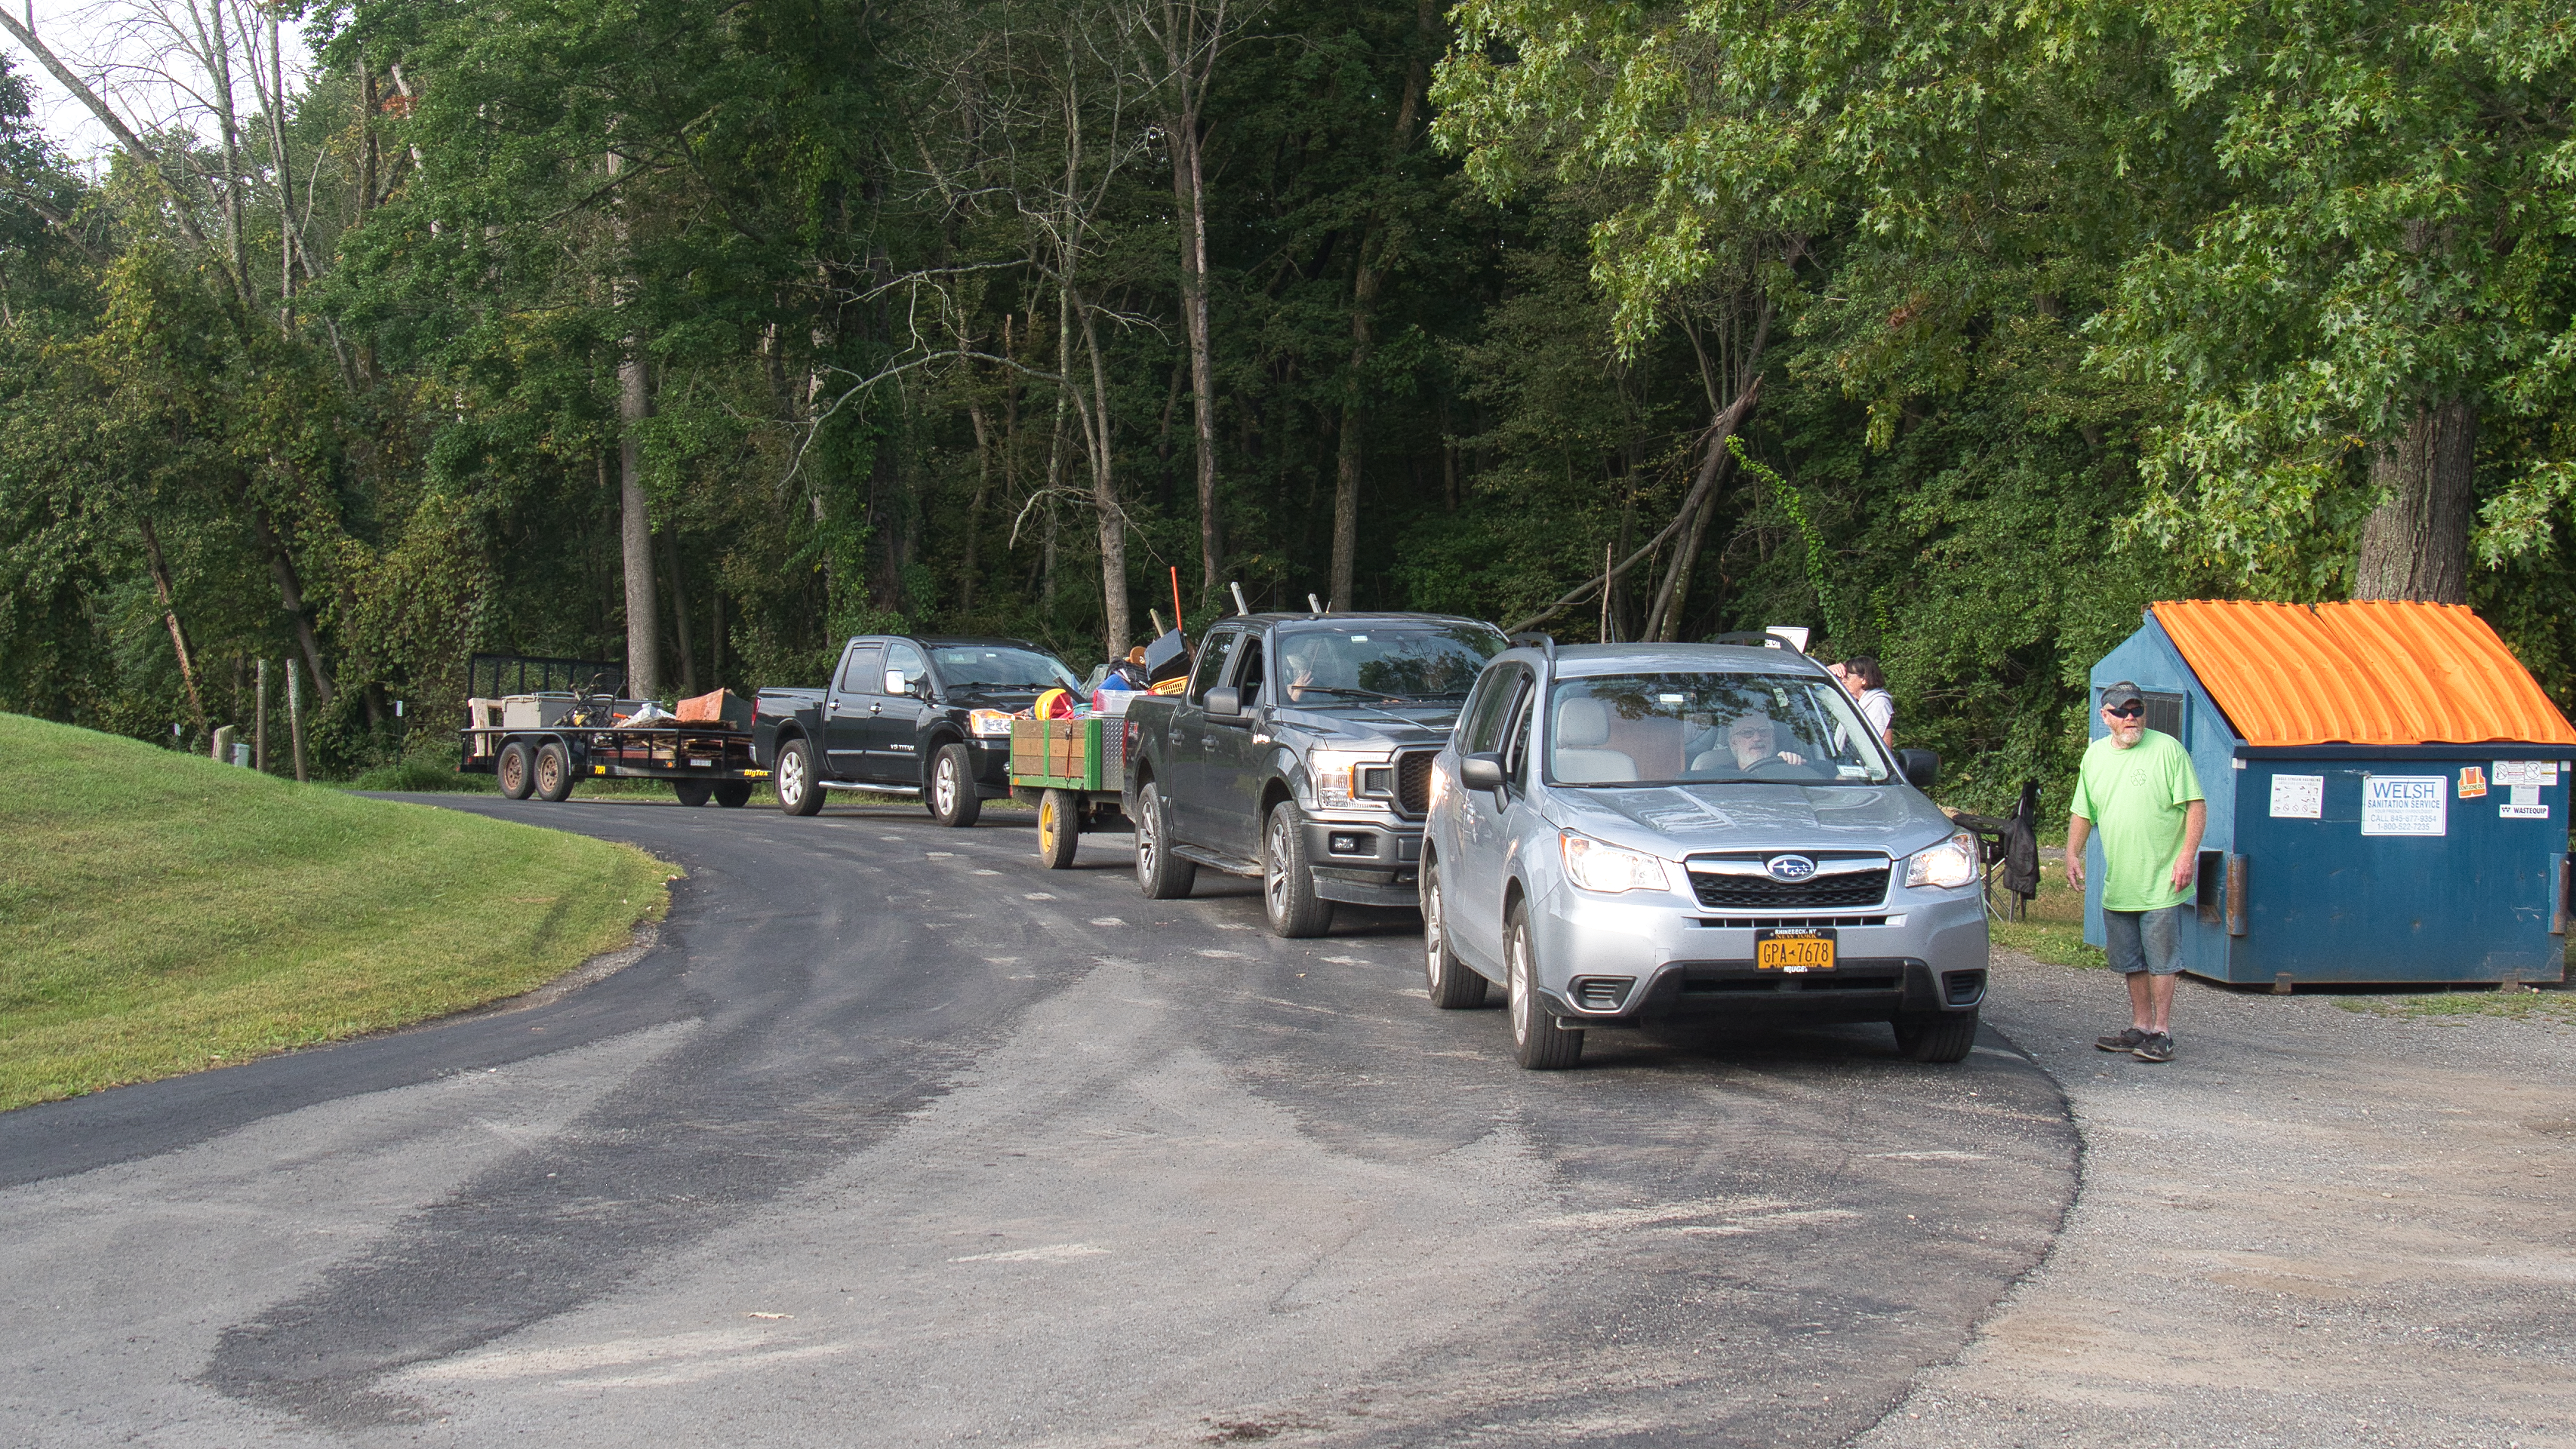 <strong>Running from 8 a.m. to 2 p.m., this year's Bob Couse Clean Up Day drew a steady number of area residents ready to part with their unwanted materials.<em>Photo by Stan Hirson</em></strong>